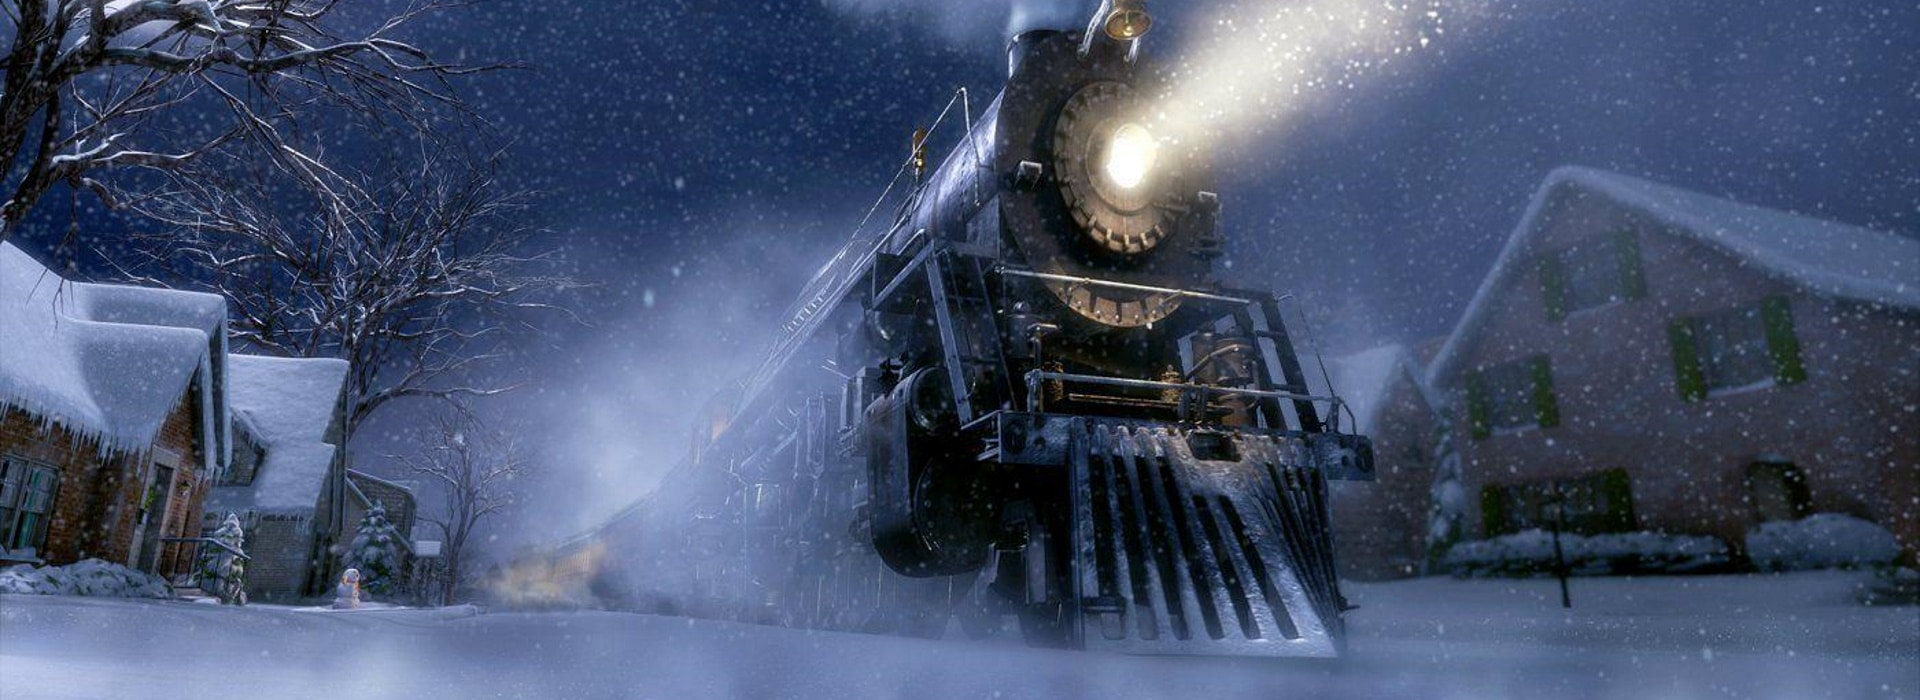 12 Christmas Movies for Festive Cheer